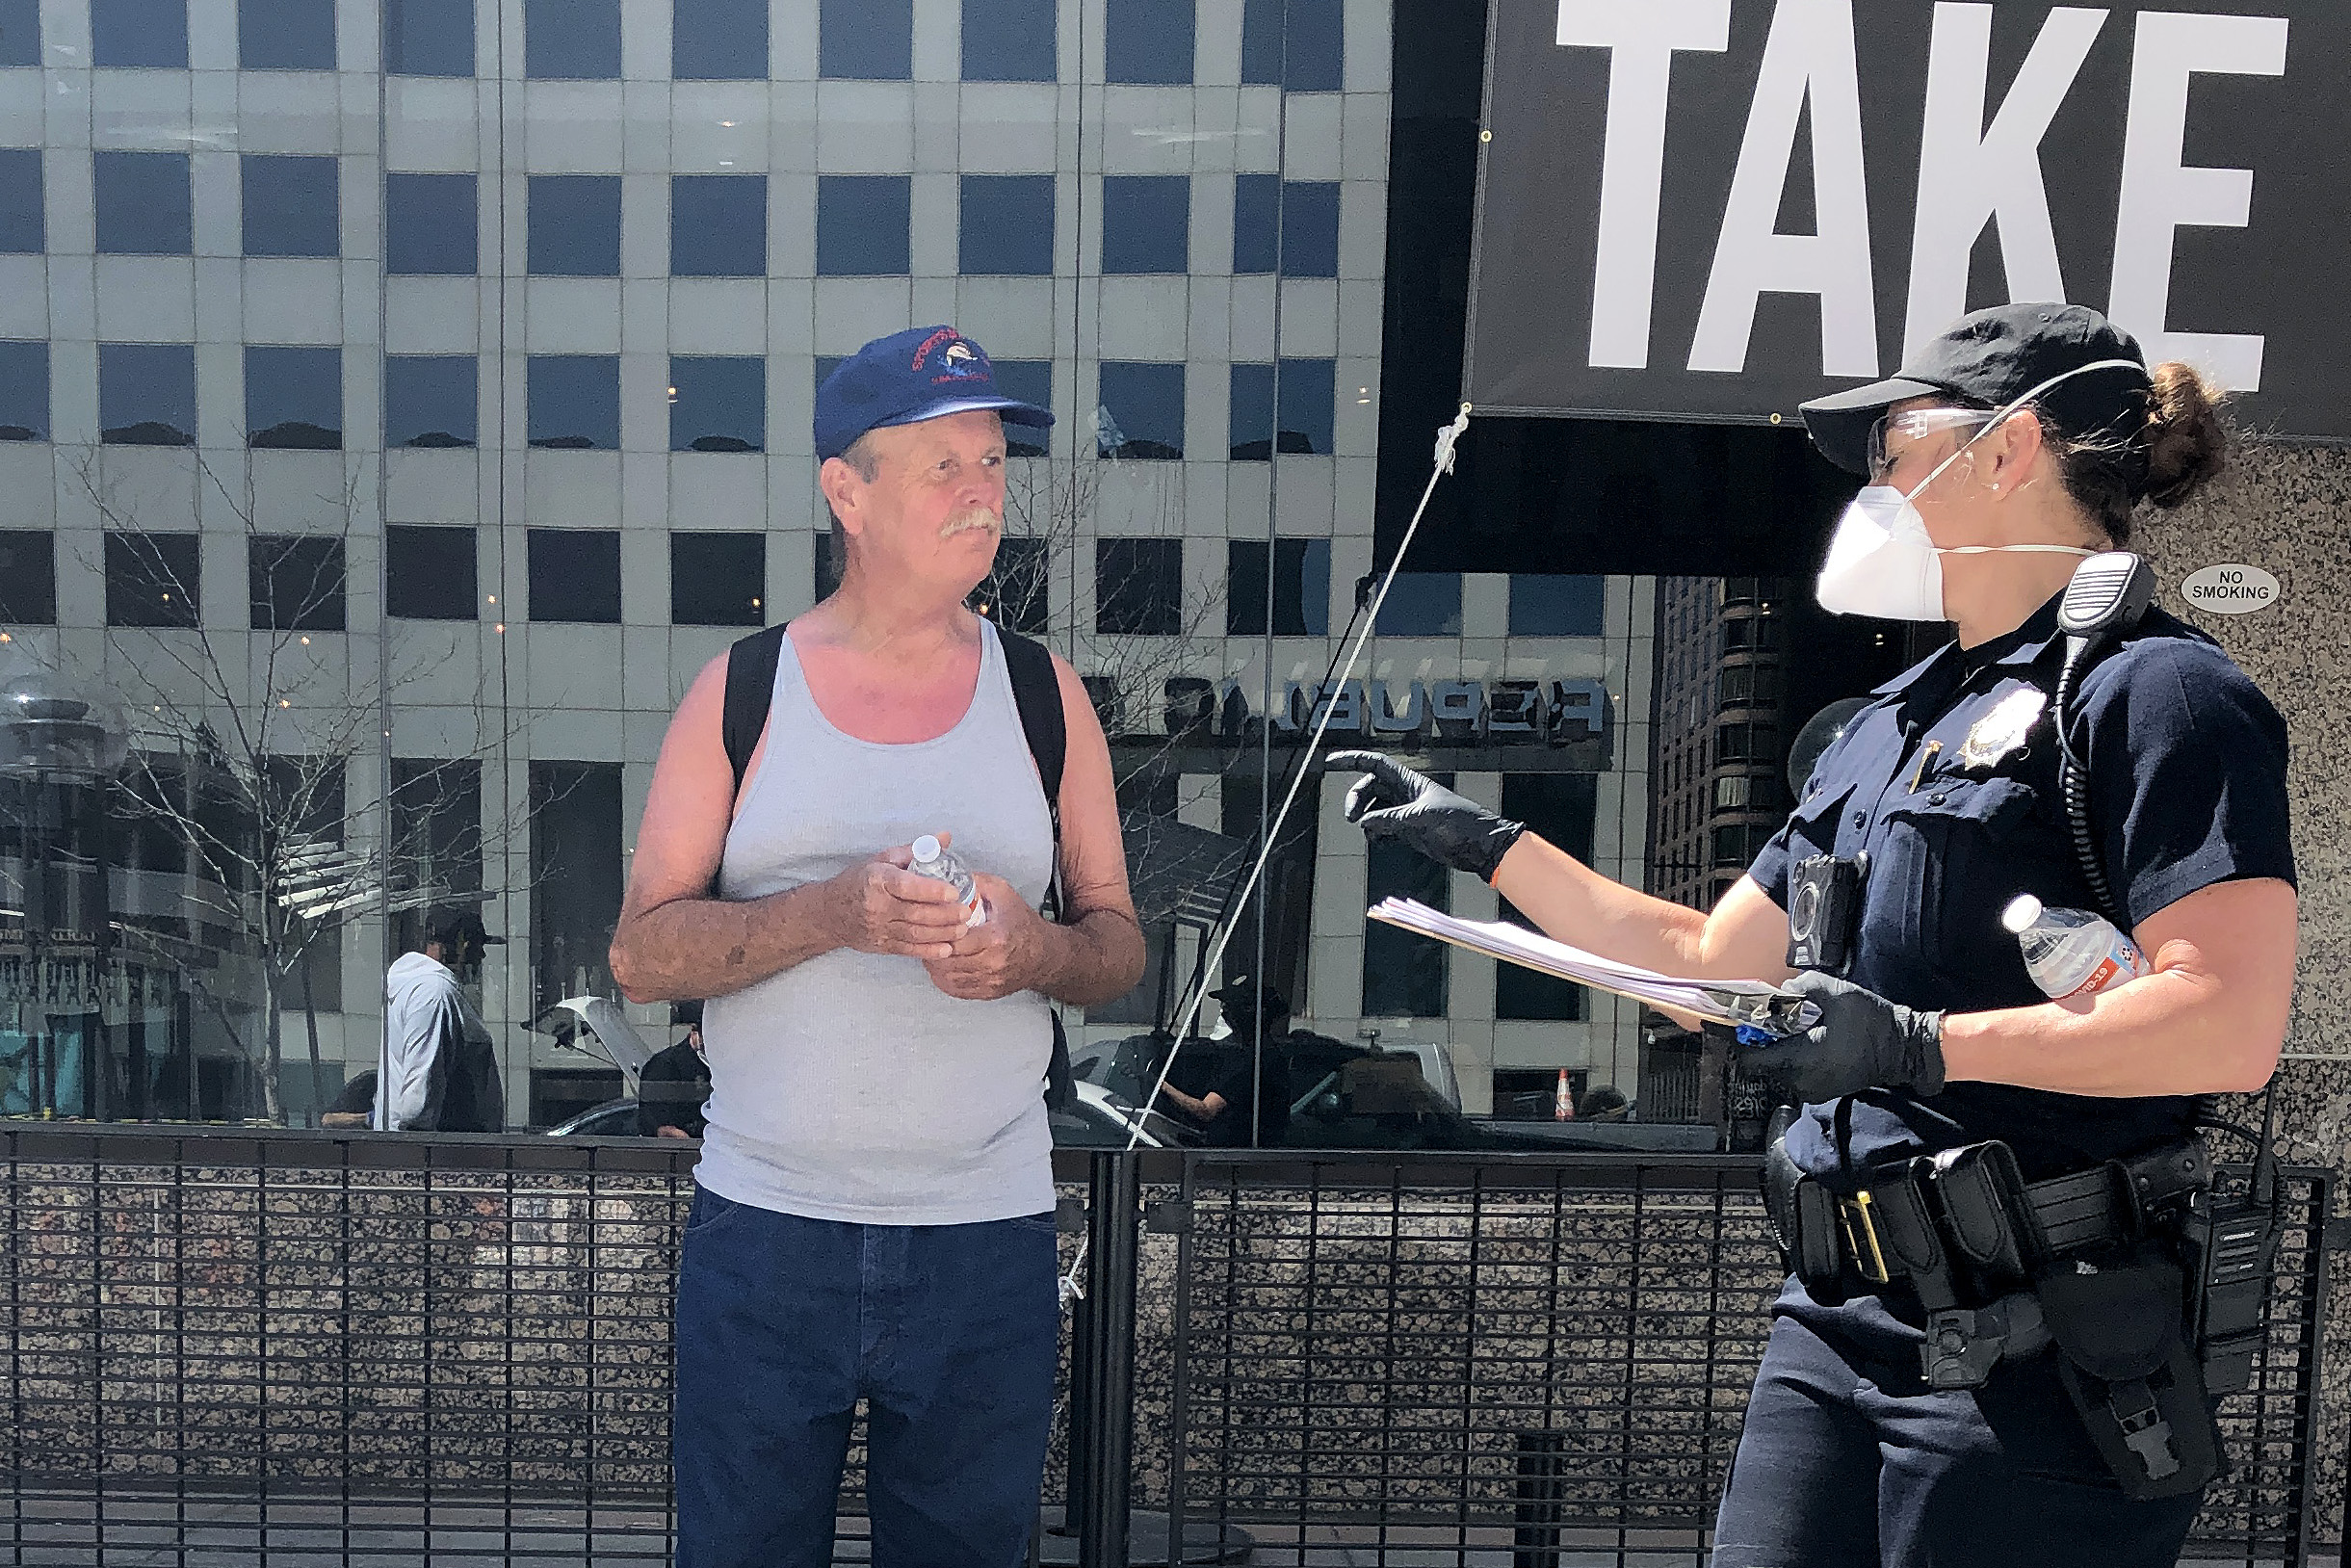 Denver Officer Teresa Gillian, in face mask, handing out water on April 7, 2020.